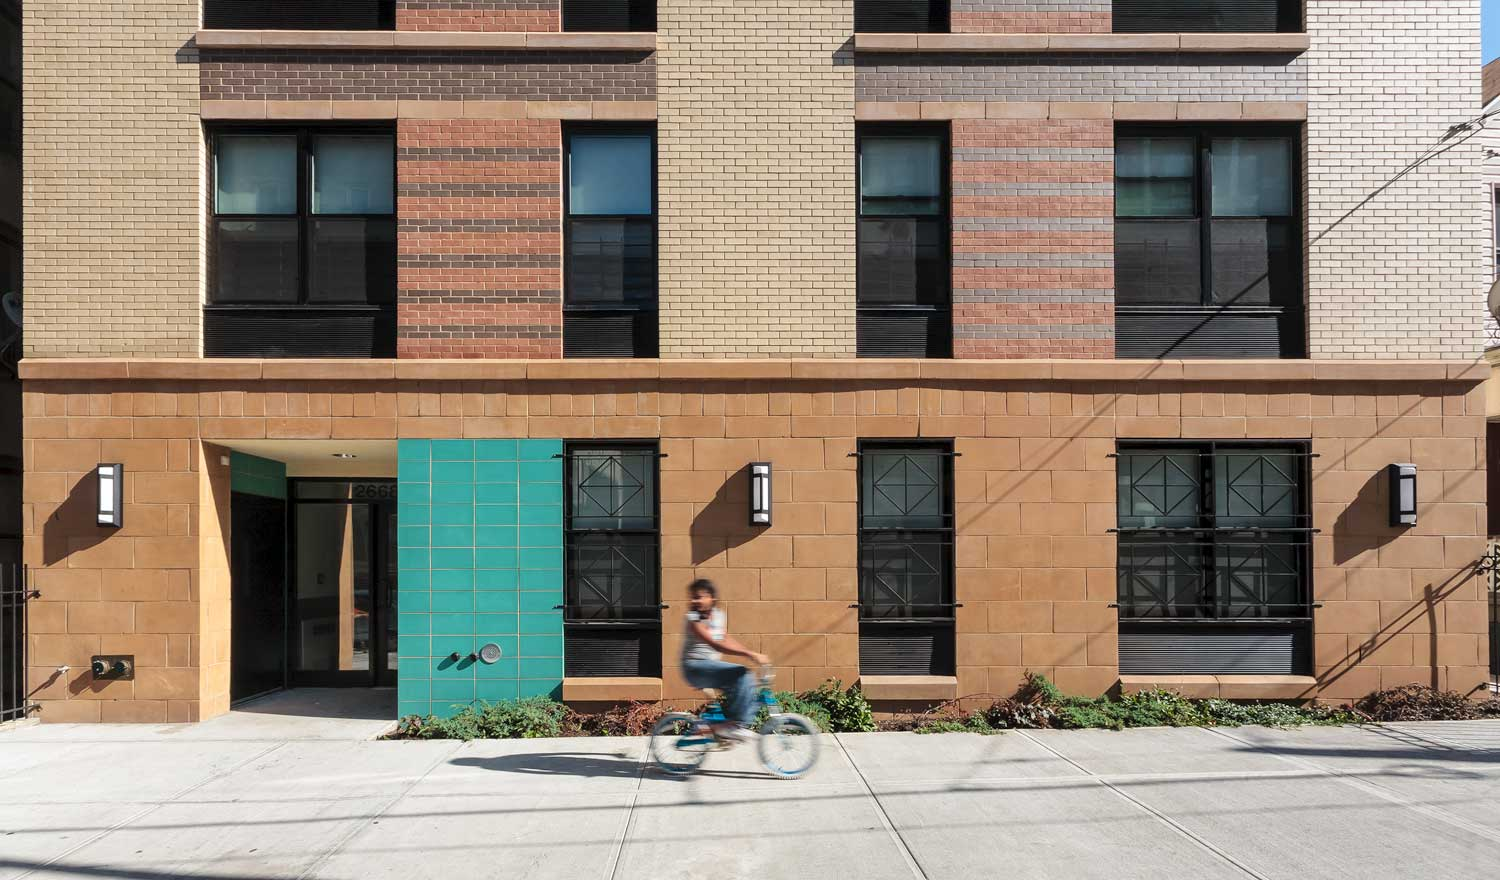 Decatur Green is green new construction that brings built-in sustainability to affordable housing in the Bronx.